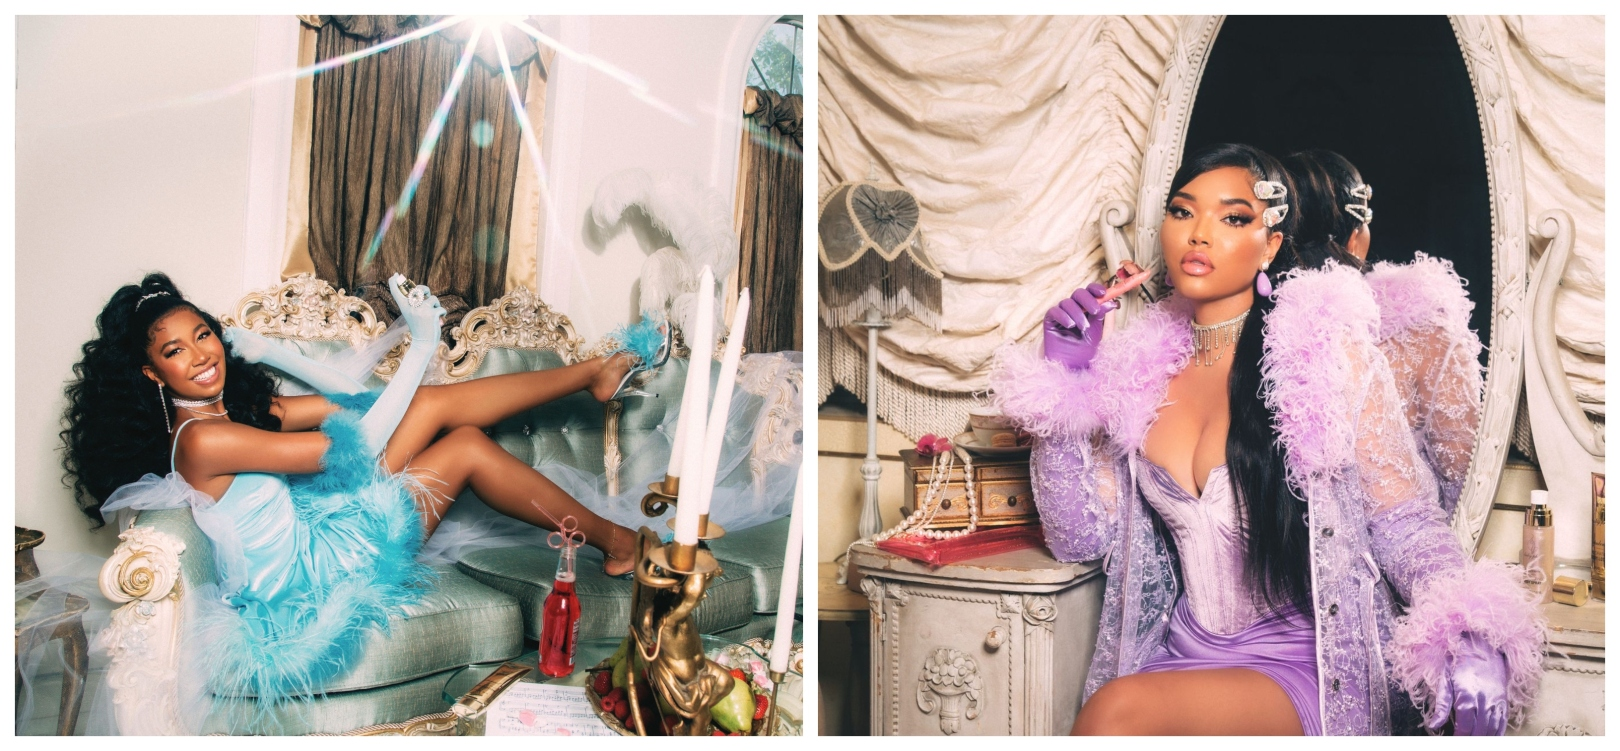 Aoki Lee Simmons and Ming Lee Simons for Baby Phat Beauty